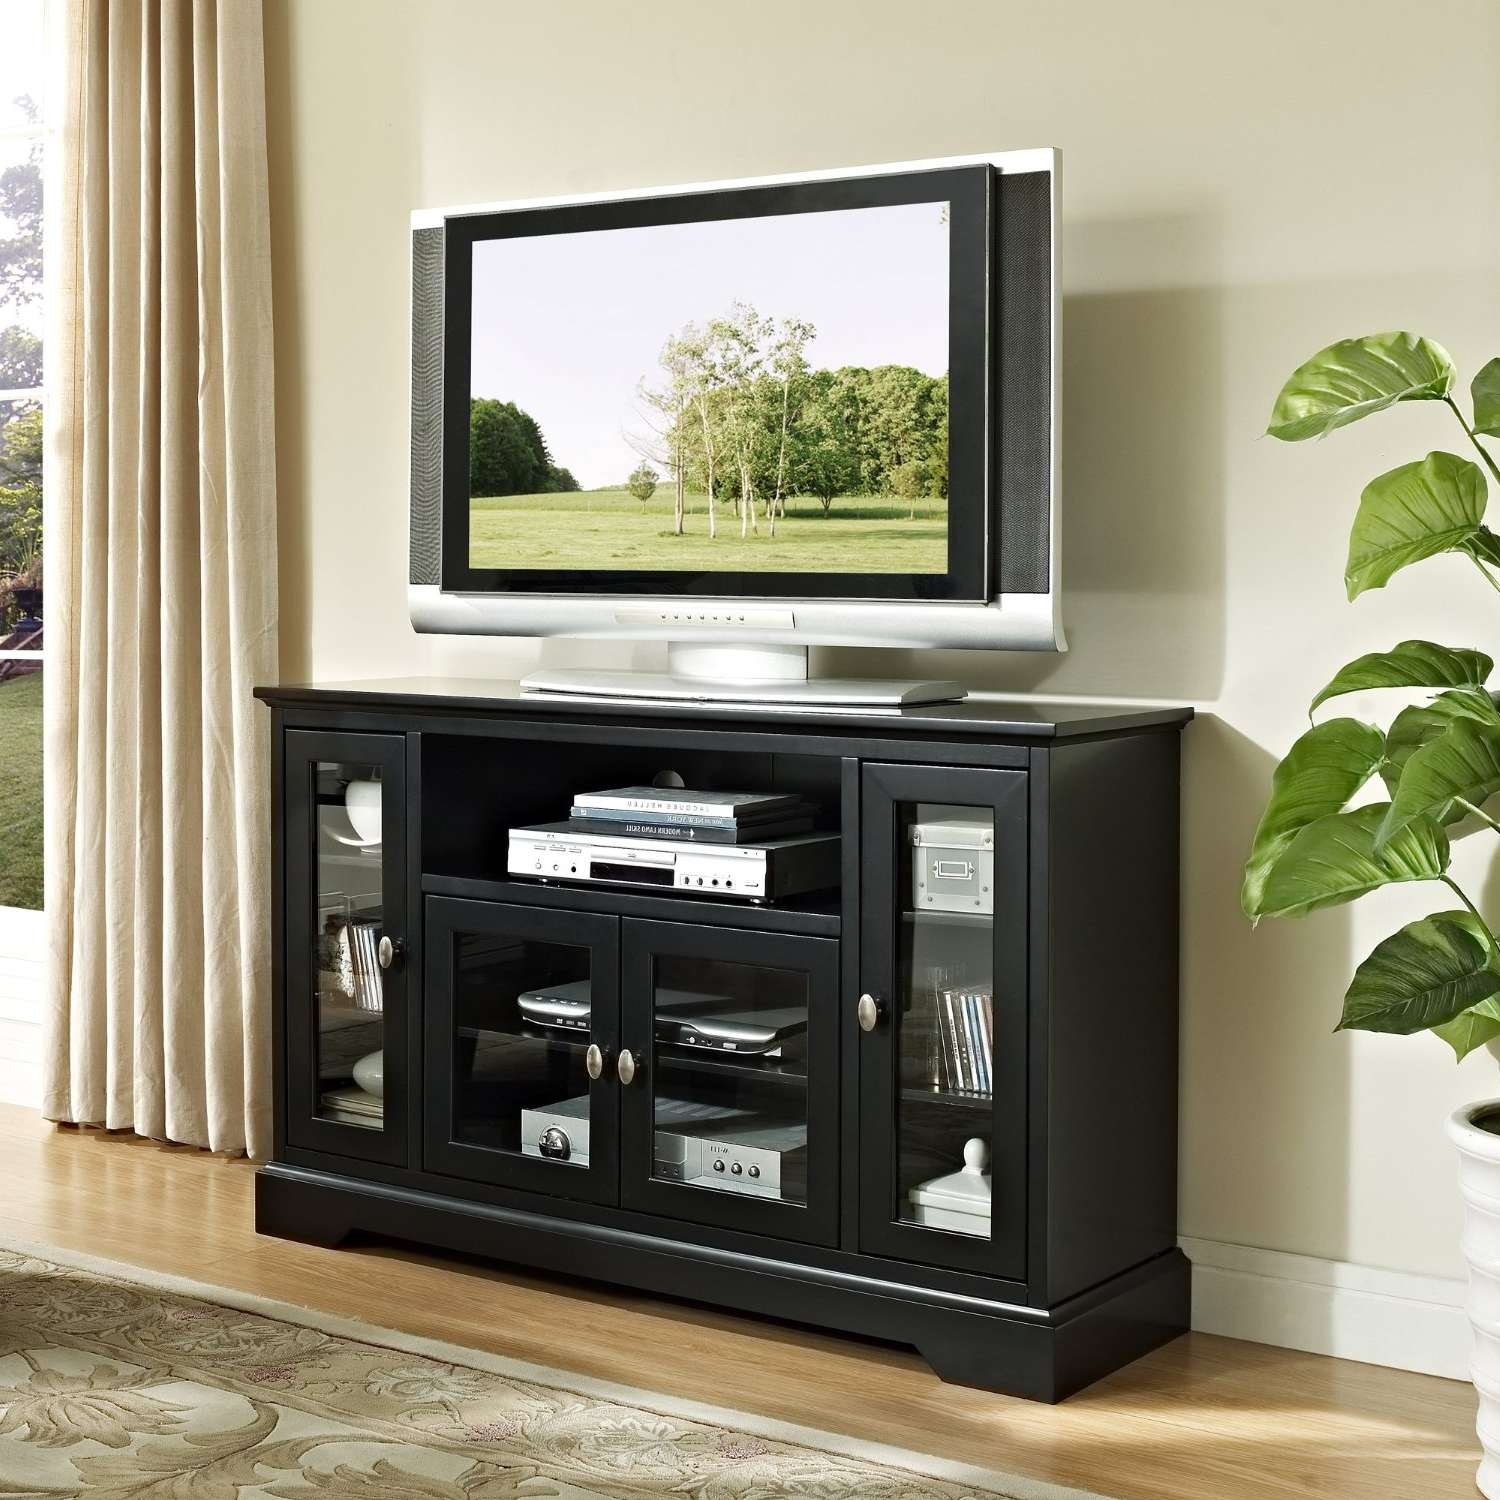 Narrow Tv Stands For Flat Screens – Interior Design Within Narrow Tv Stands For Flat Screens (View 8 of 15)